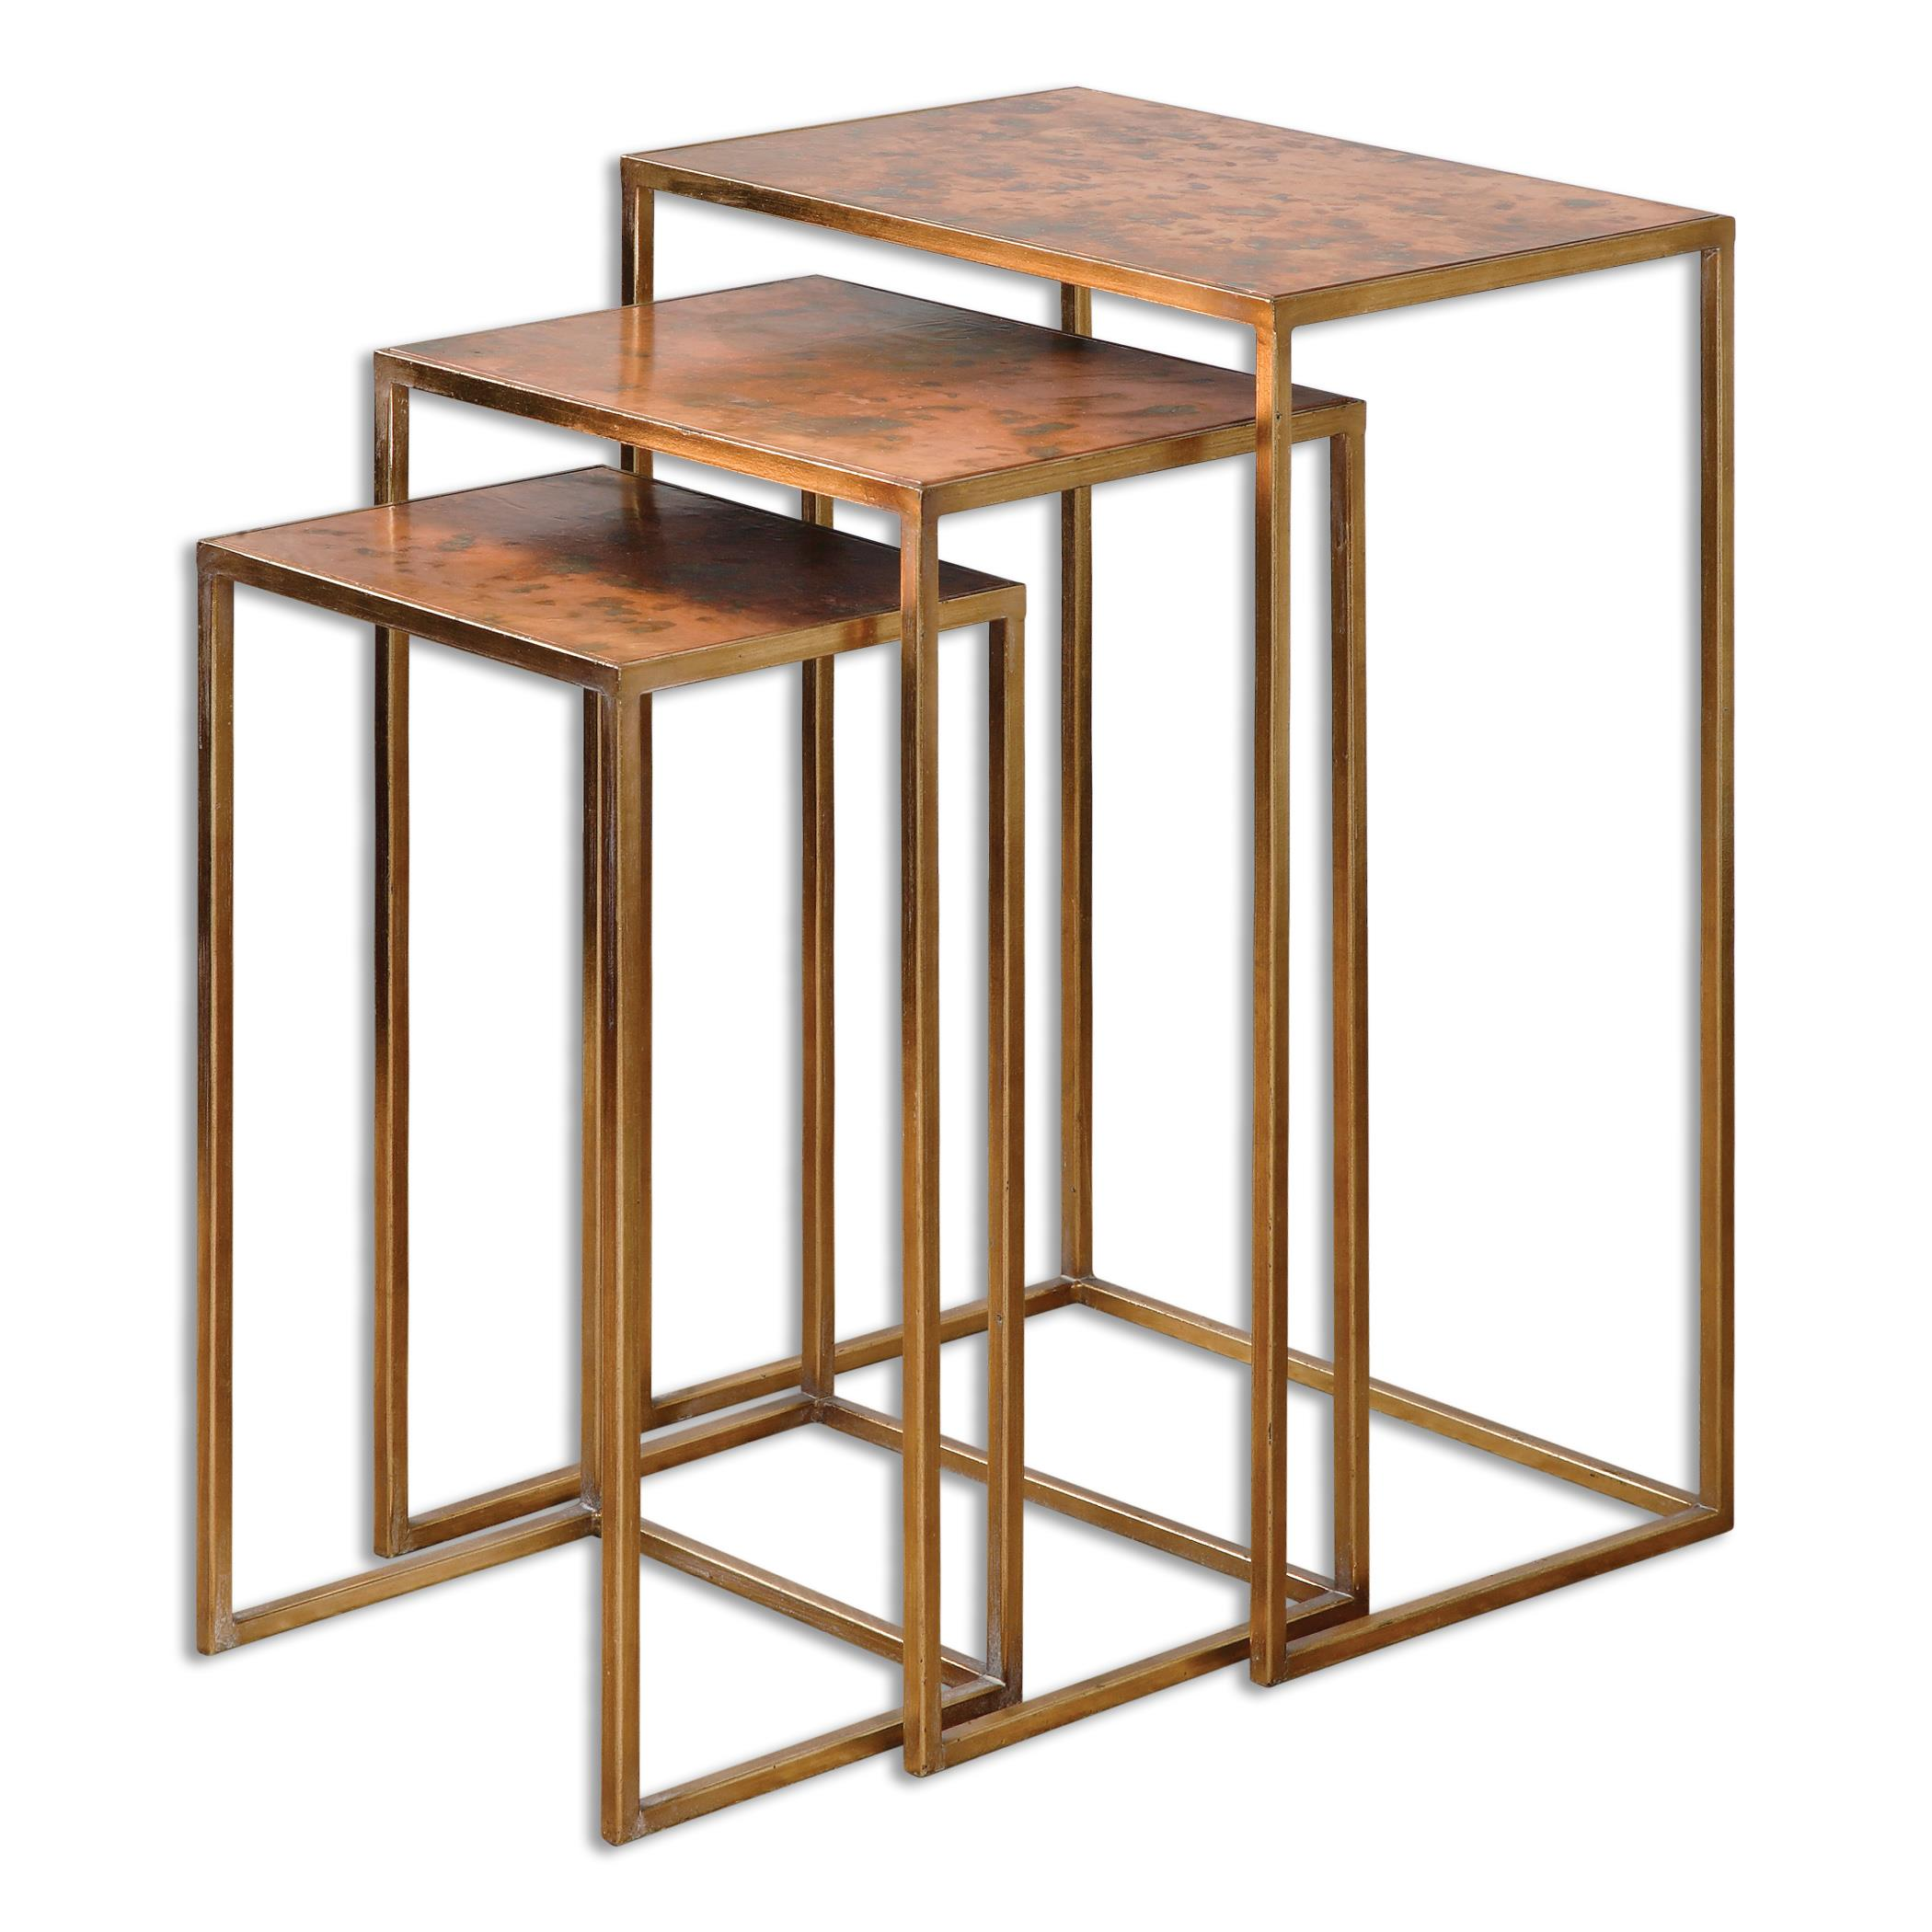 Accent Furniture - Occasional Tables Copres Oxidized Nesting Tables Set/3 by Uttermost at Upper Room Home Furnishings